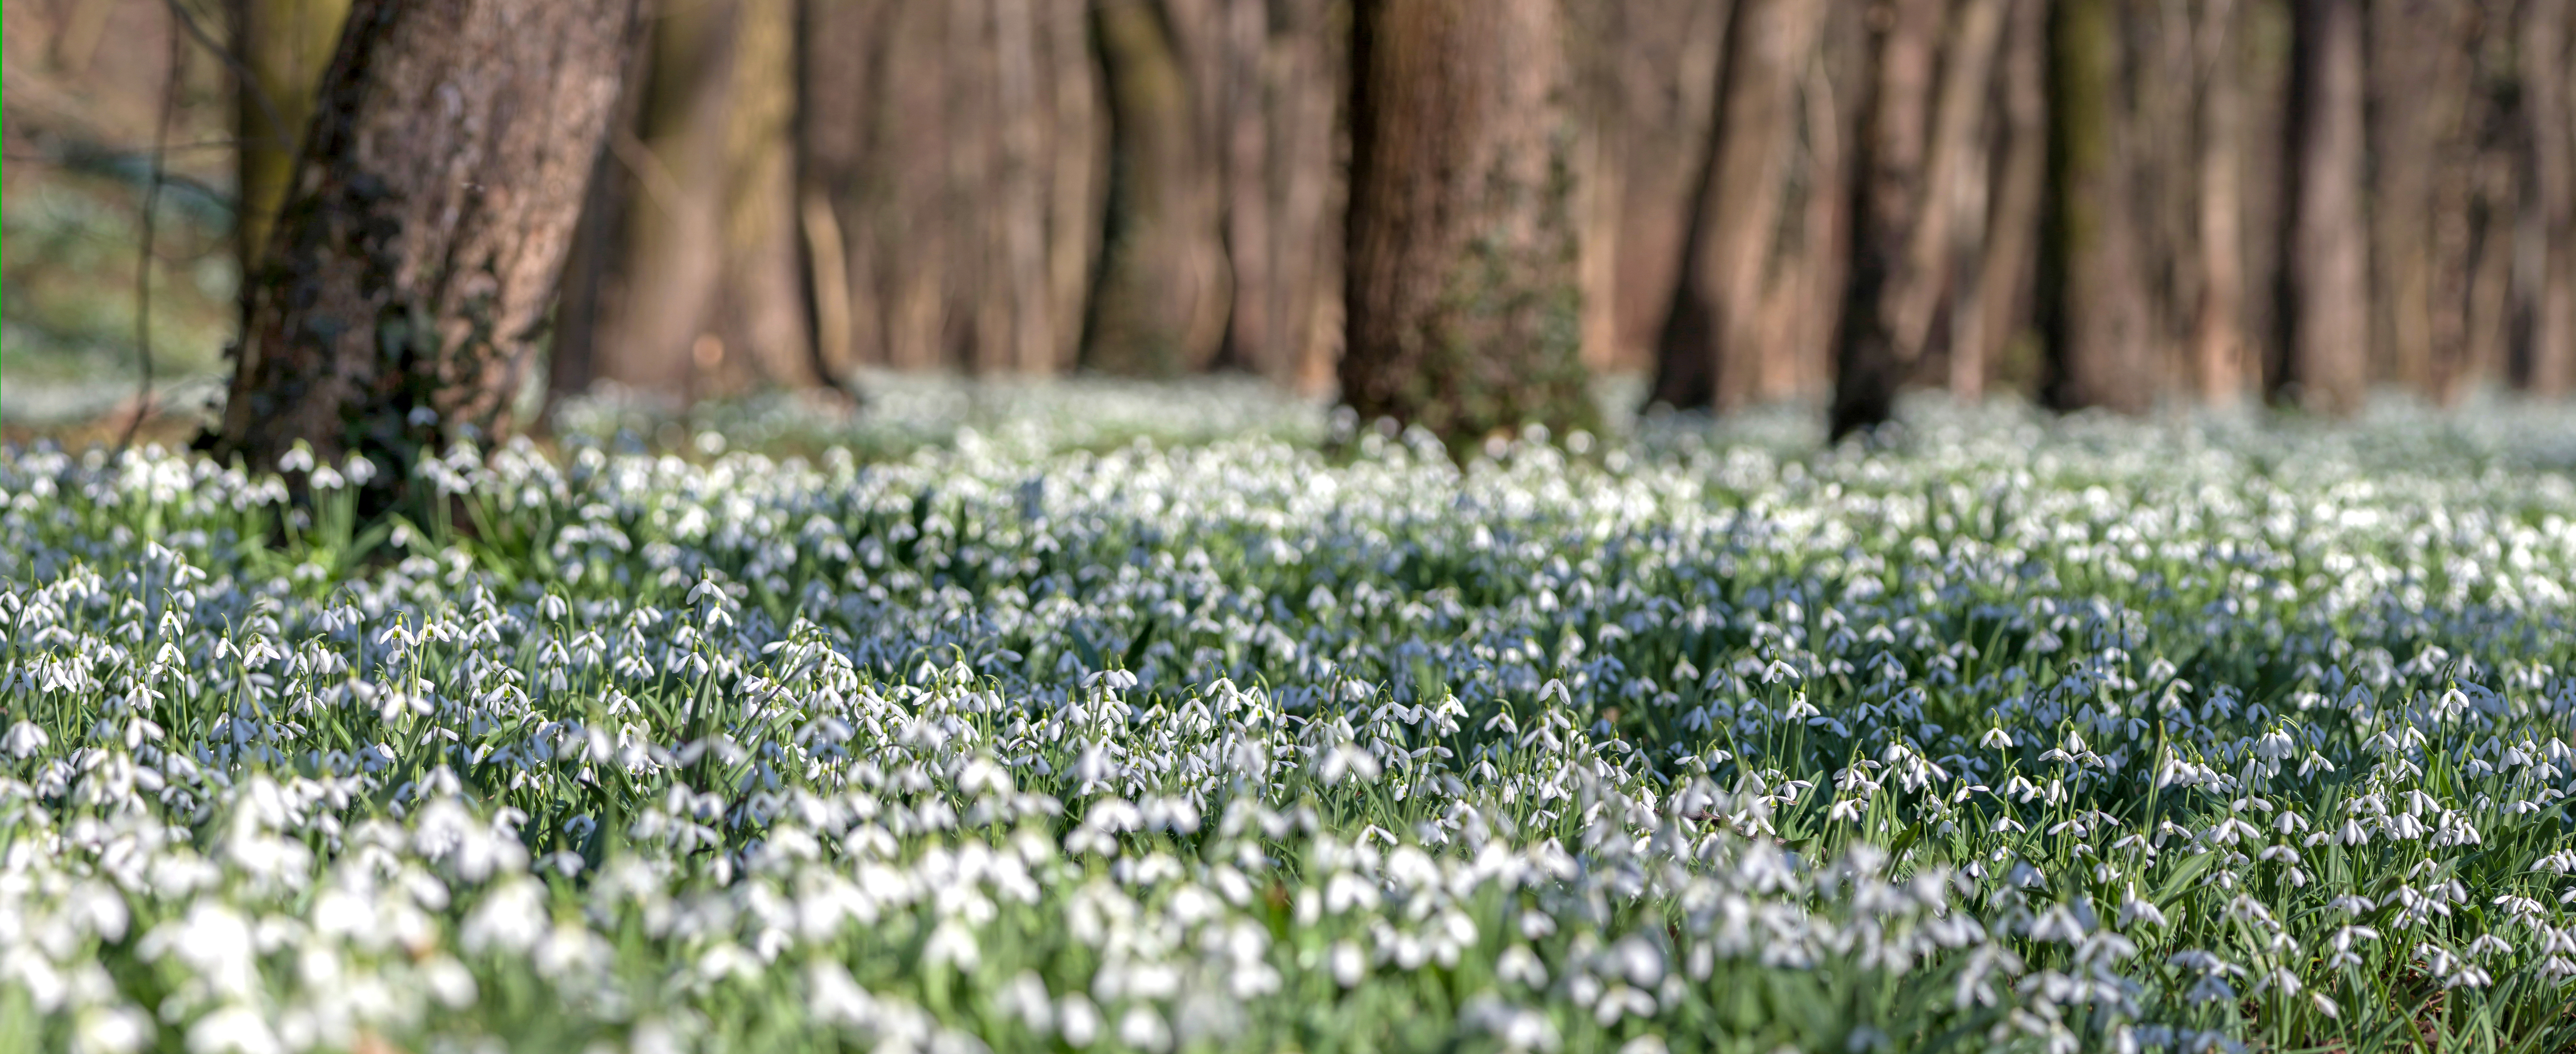 Snowdrops in woodland setting